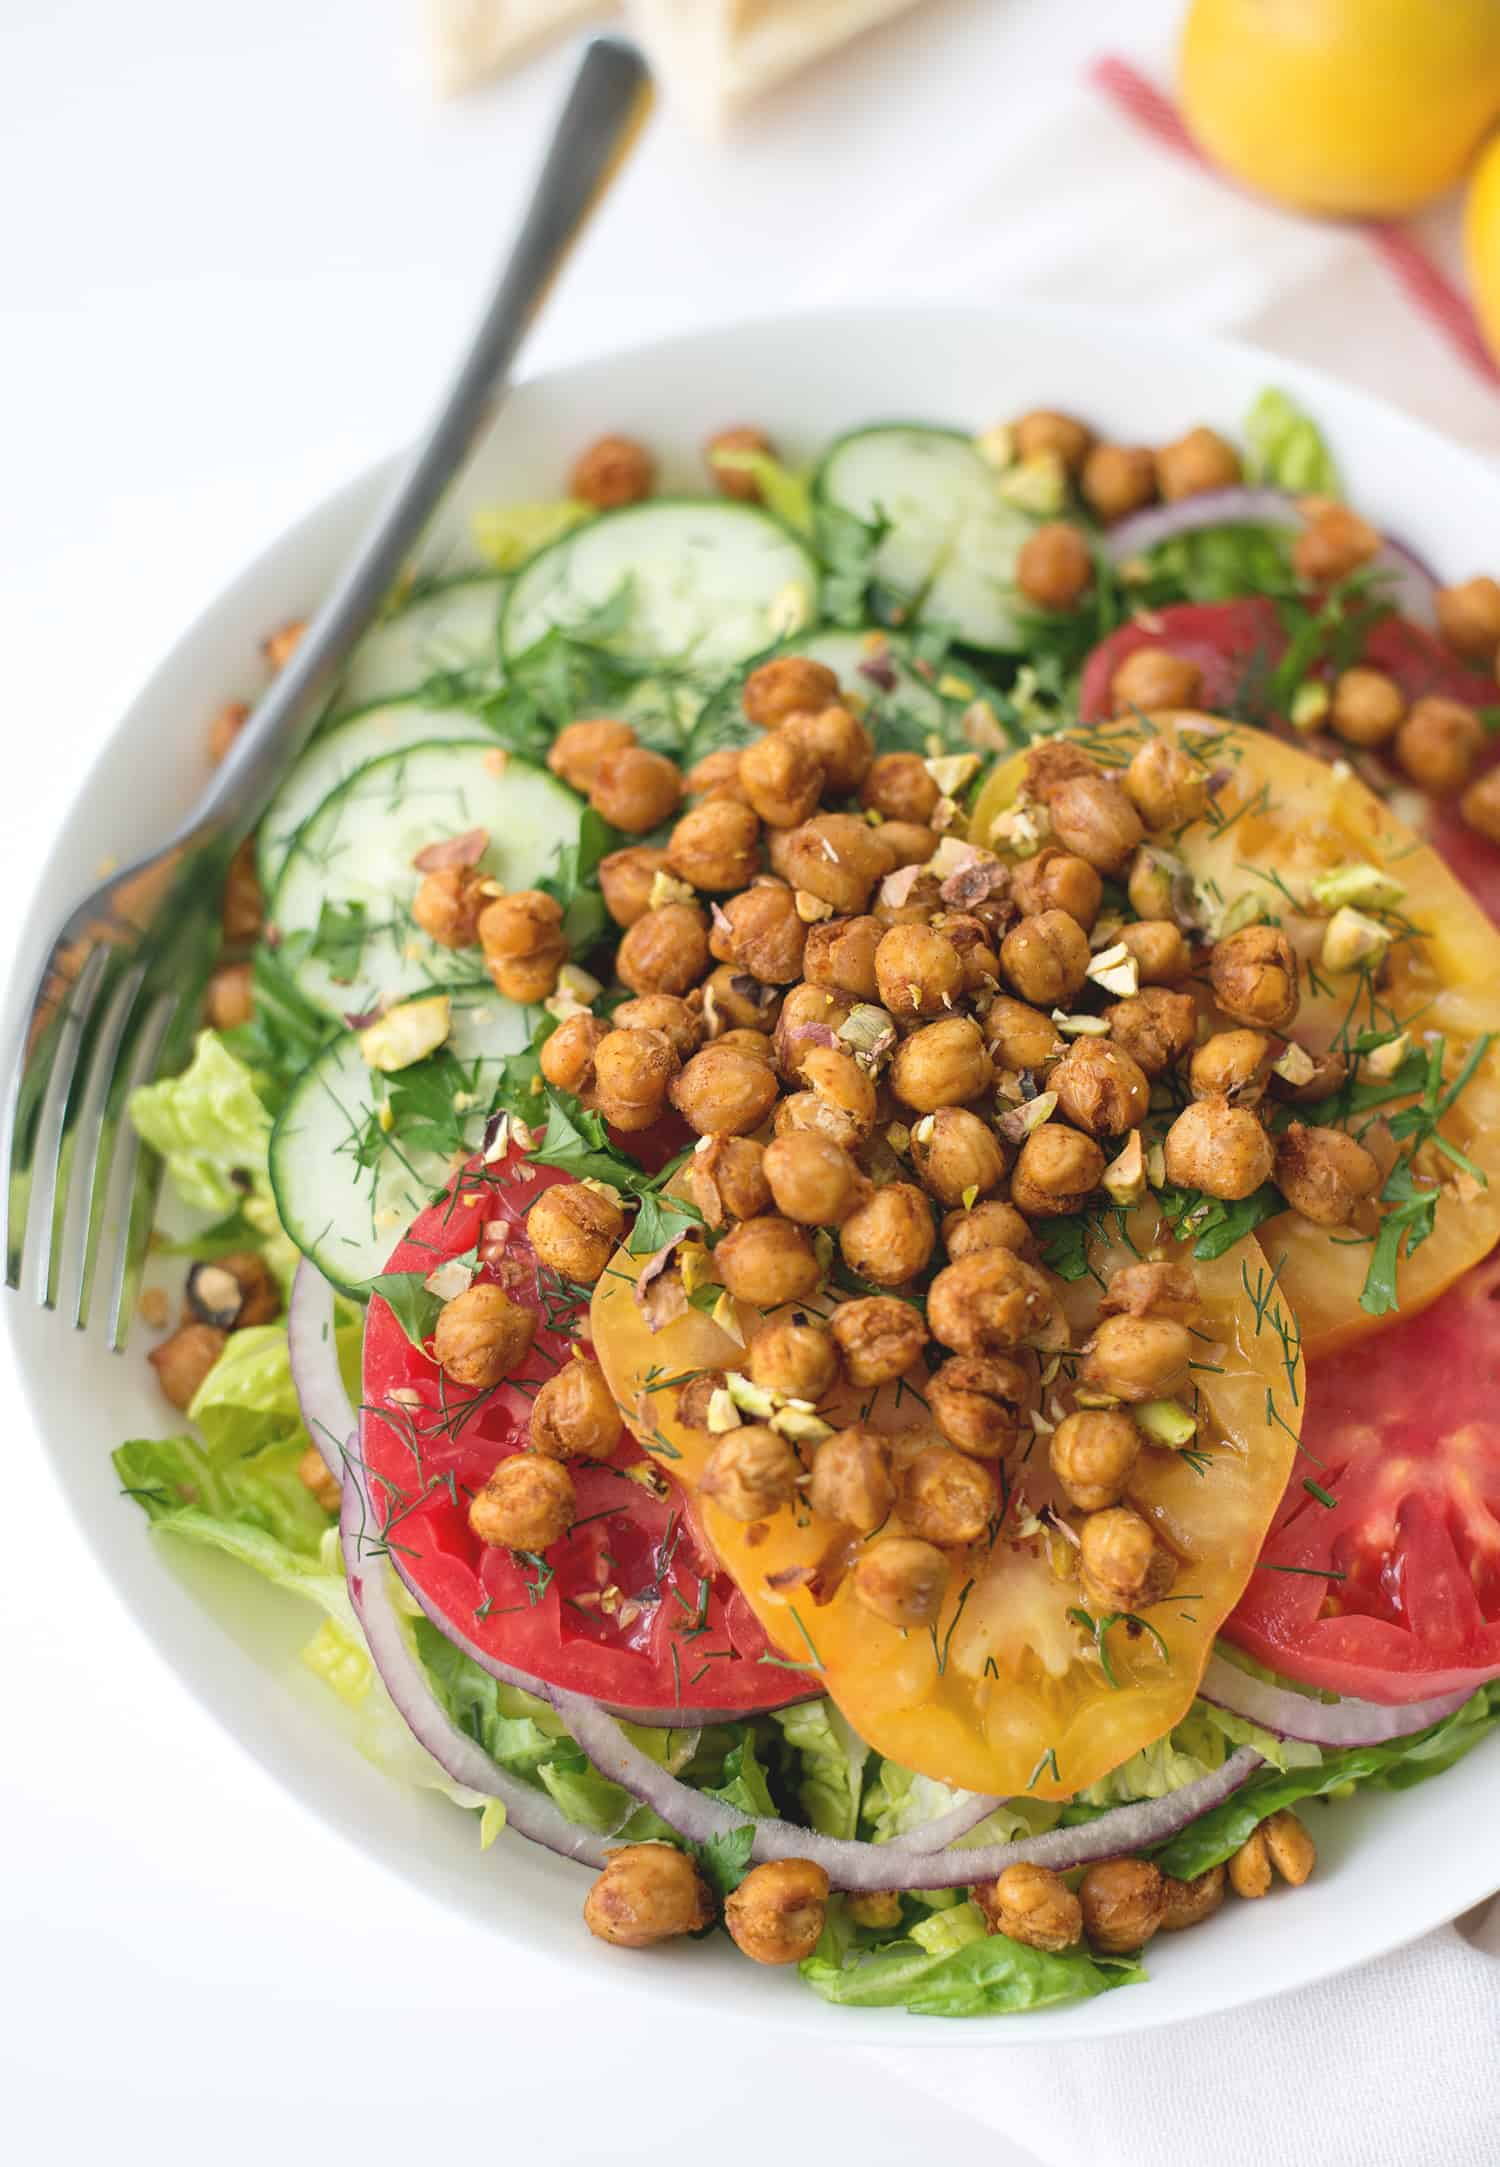 Roasted Chickpea Salad with Hummus Dressing! Crispy, seasoned roasted chickpeas in a yummy salad and a hummus-dill dressing. Vegan & Gluten-Free | www.delishknowledge.com